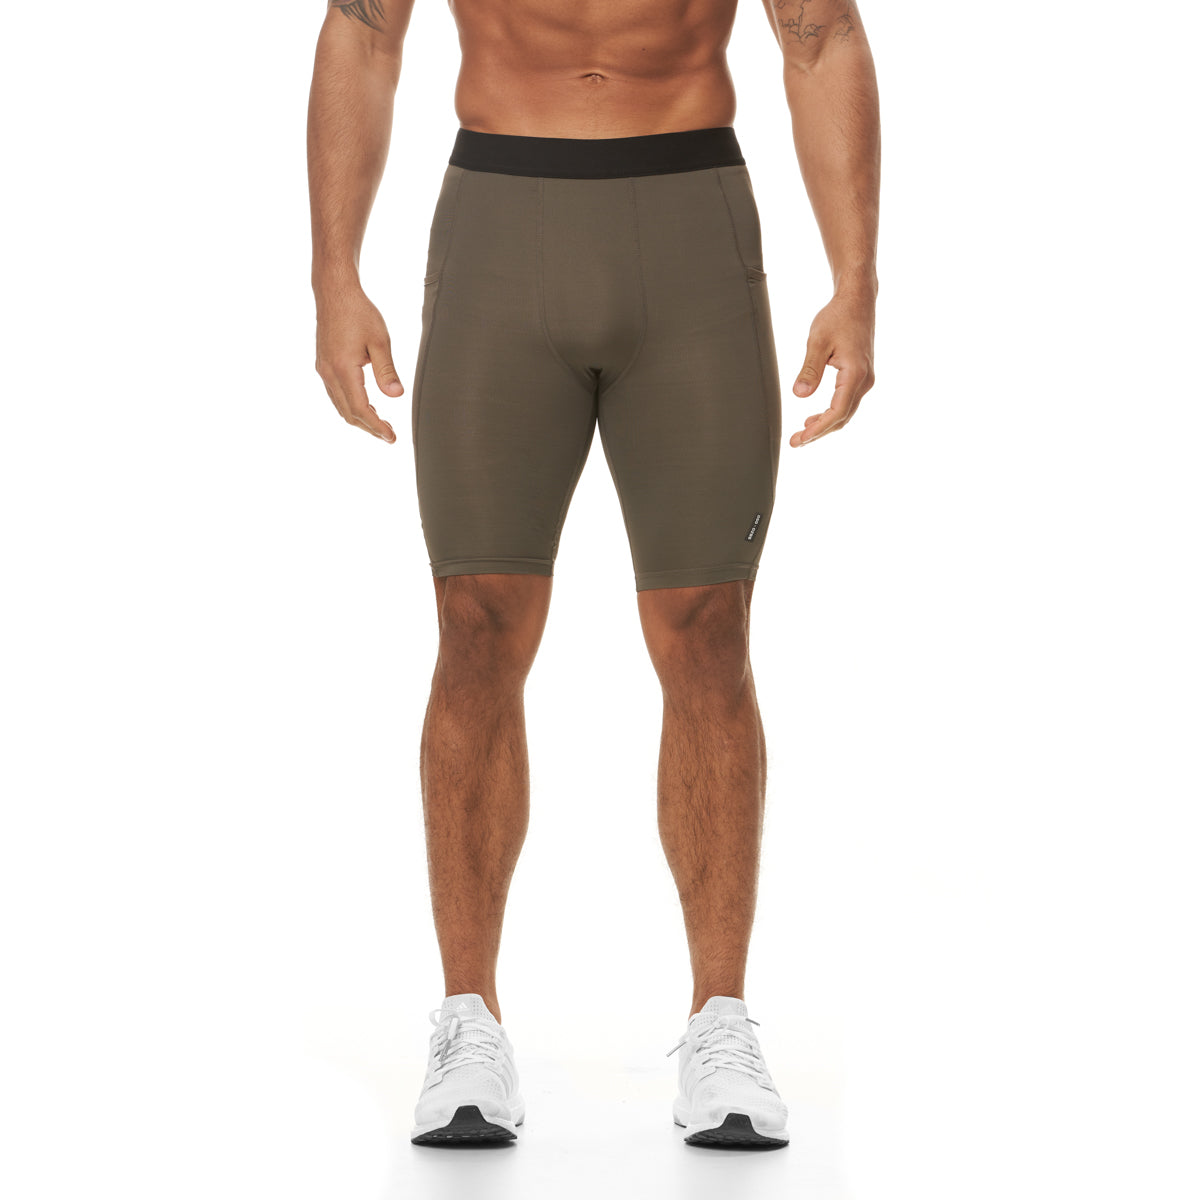 0286. Creora® Side Pocket Compression Short - Deep Taupe